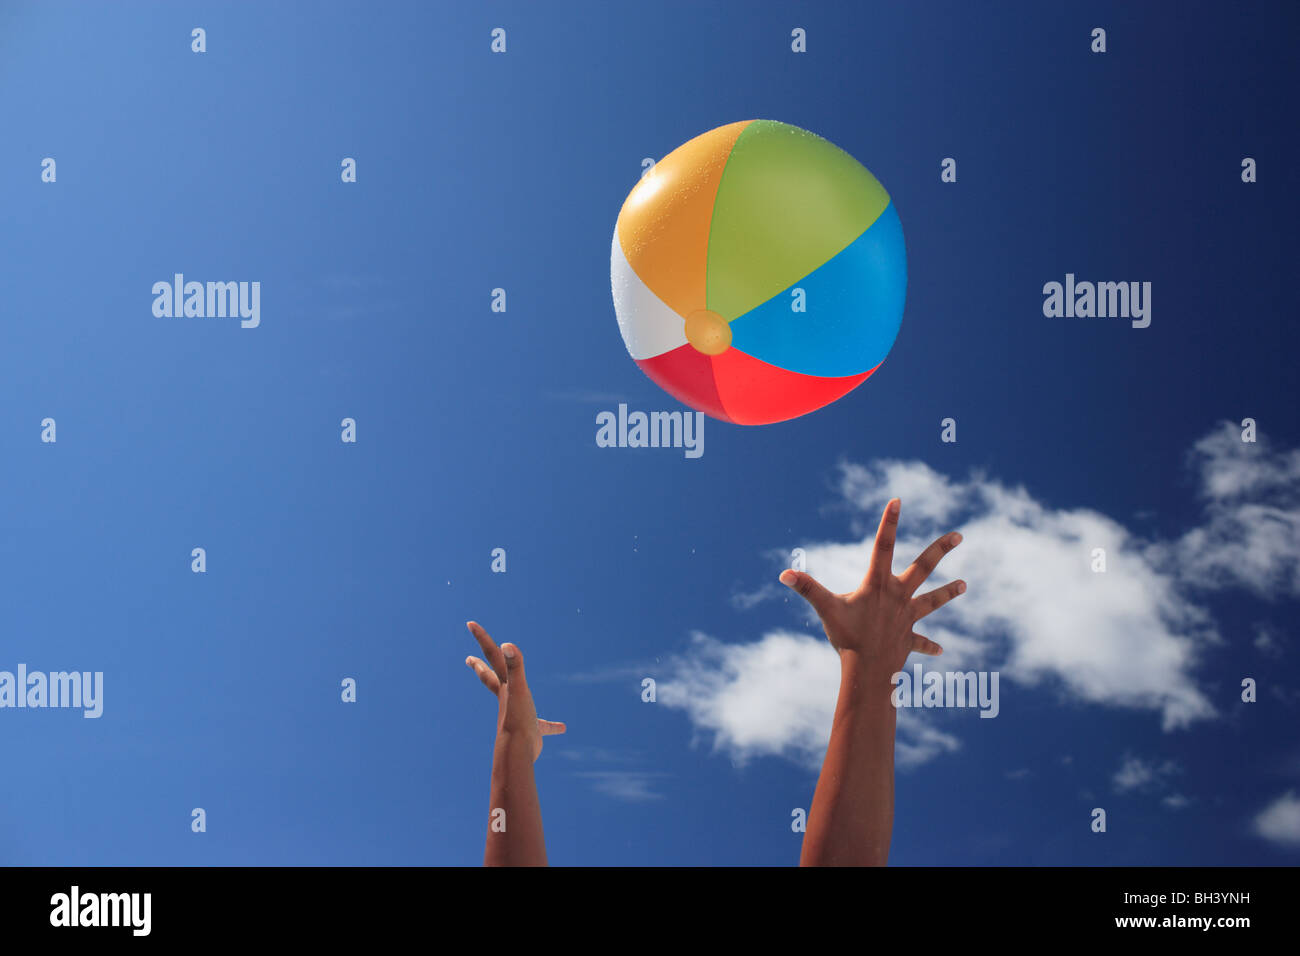 A woman's hands throwing an inflatable beach ball in the air - Stock Image